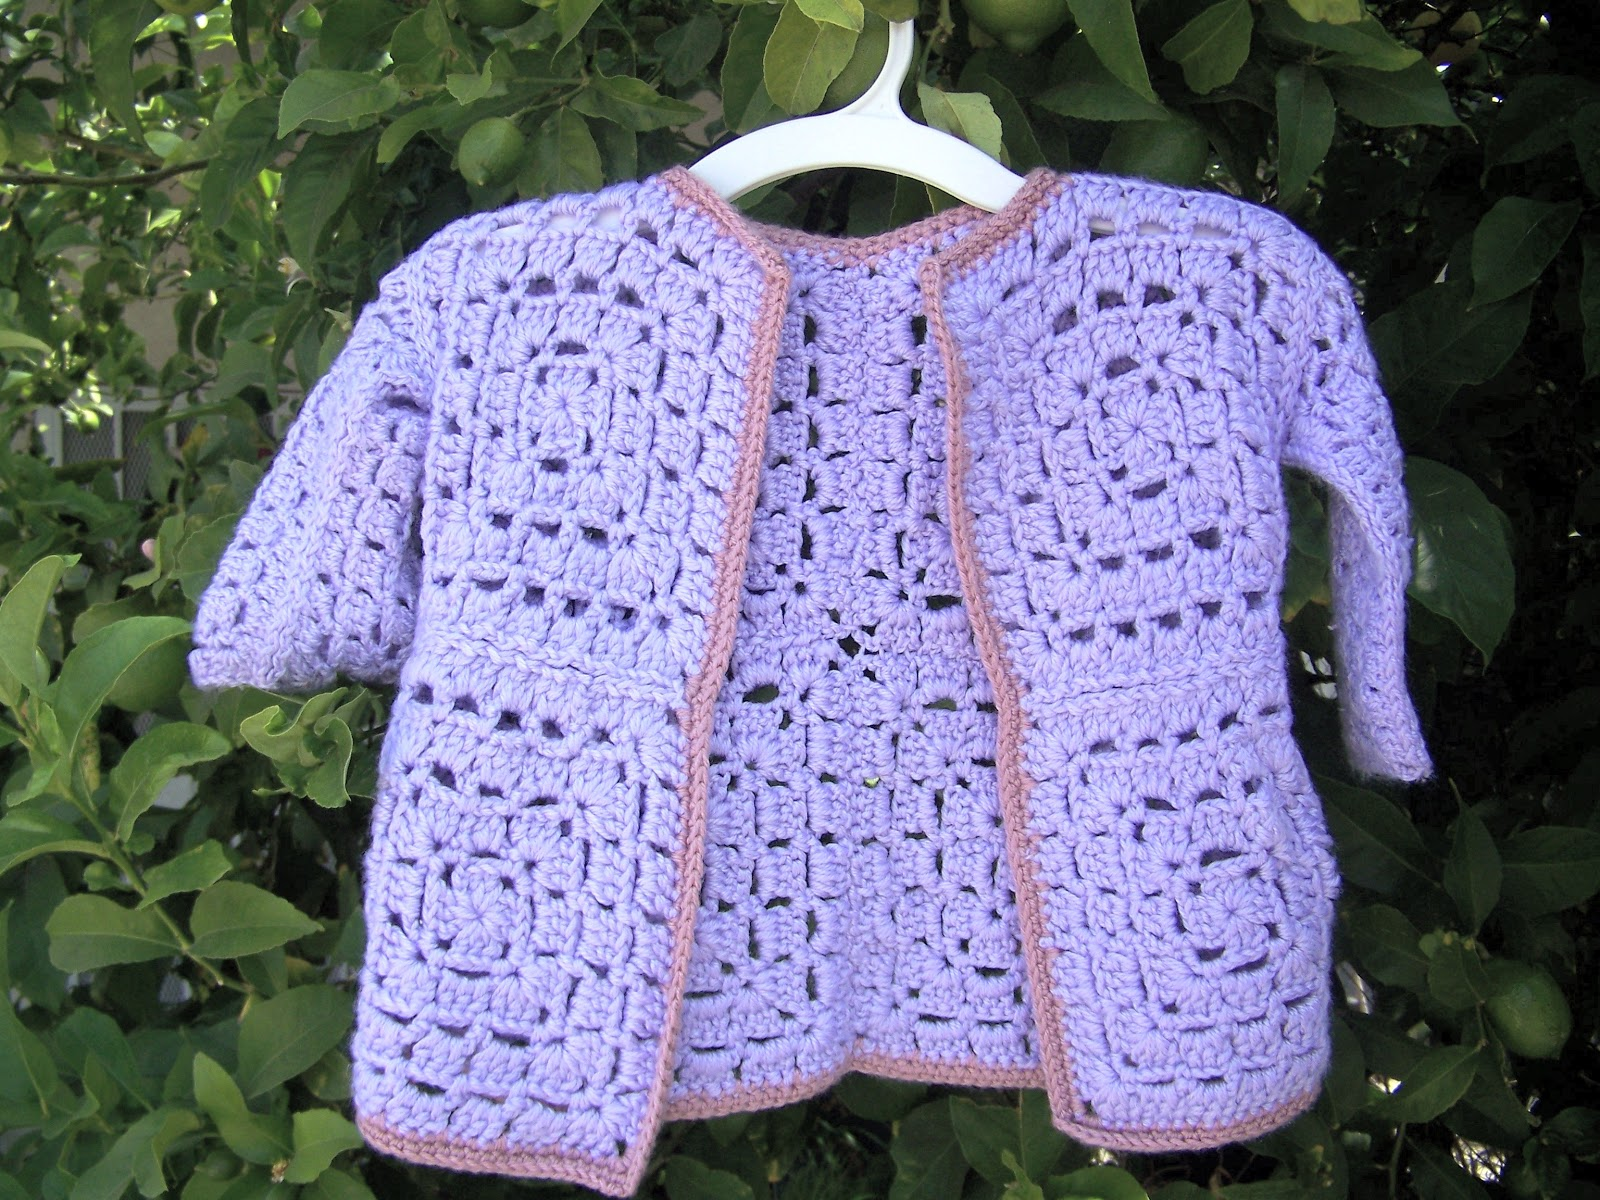 Crochet Patterns For Granny Square Sweaters : Mis 2 Manos: Made by My Hands: Granny Square Baby Sweater ...